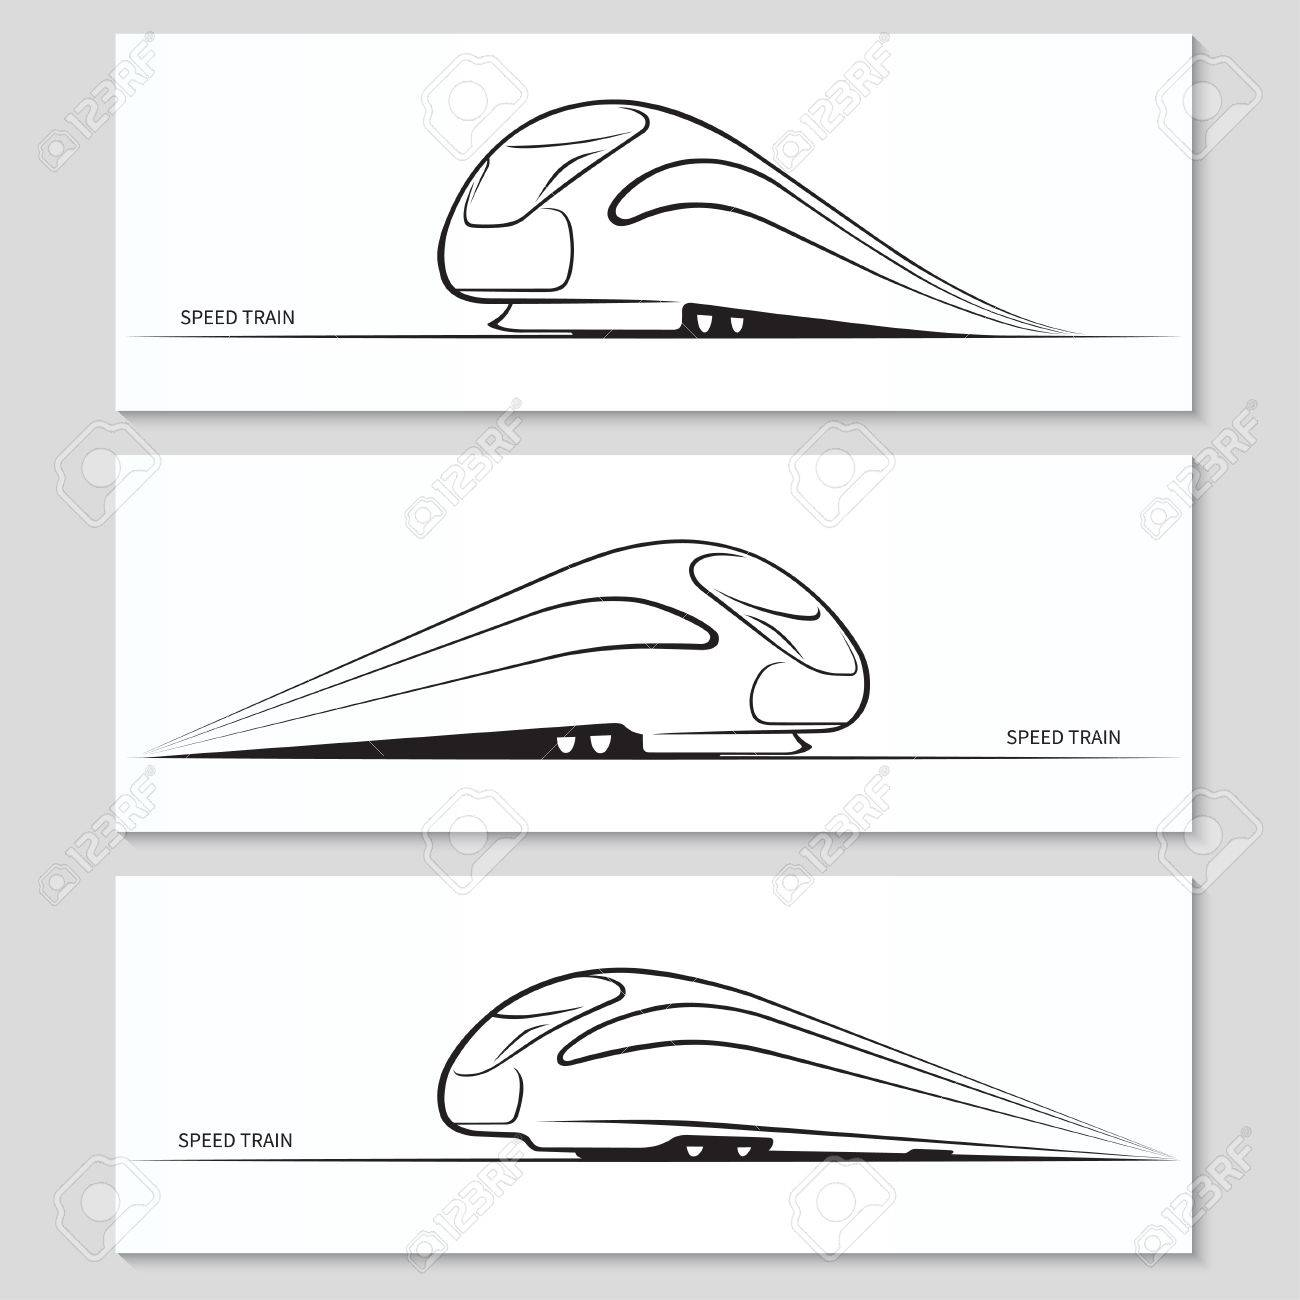 Set of modern speed train silhouettes and contours - 35758400